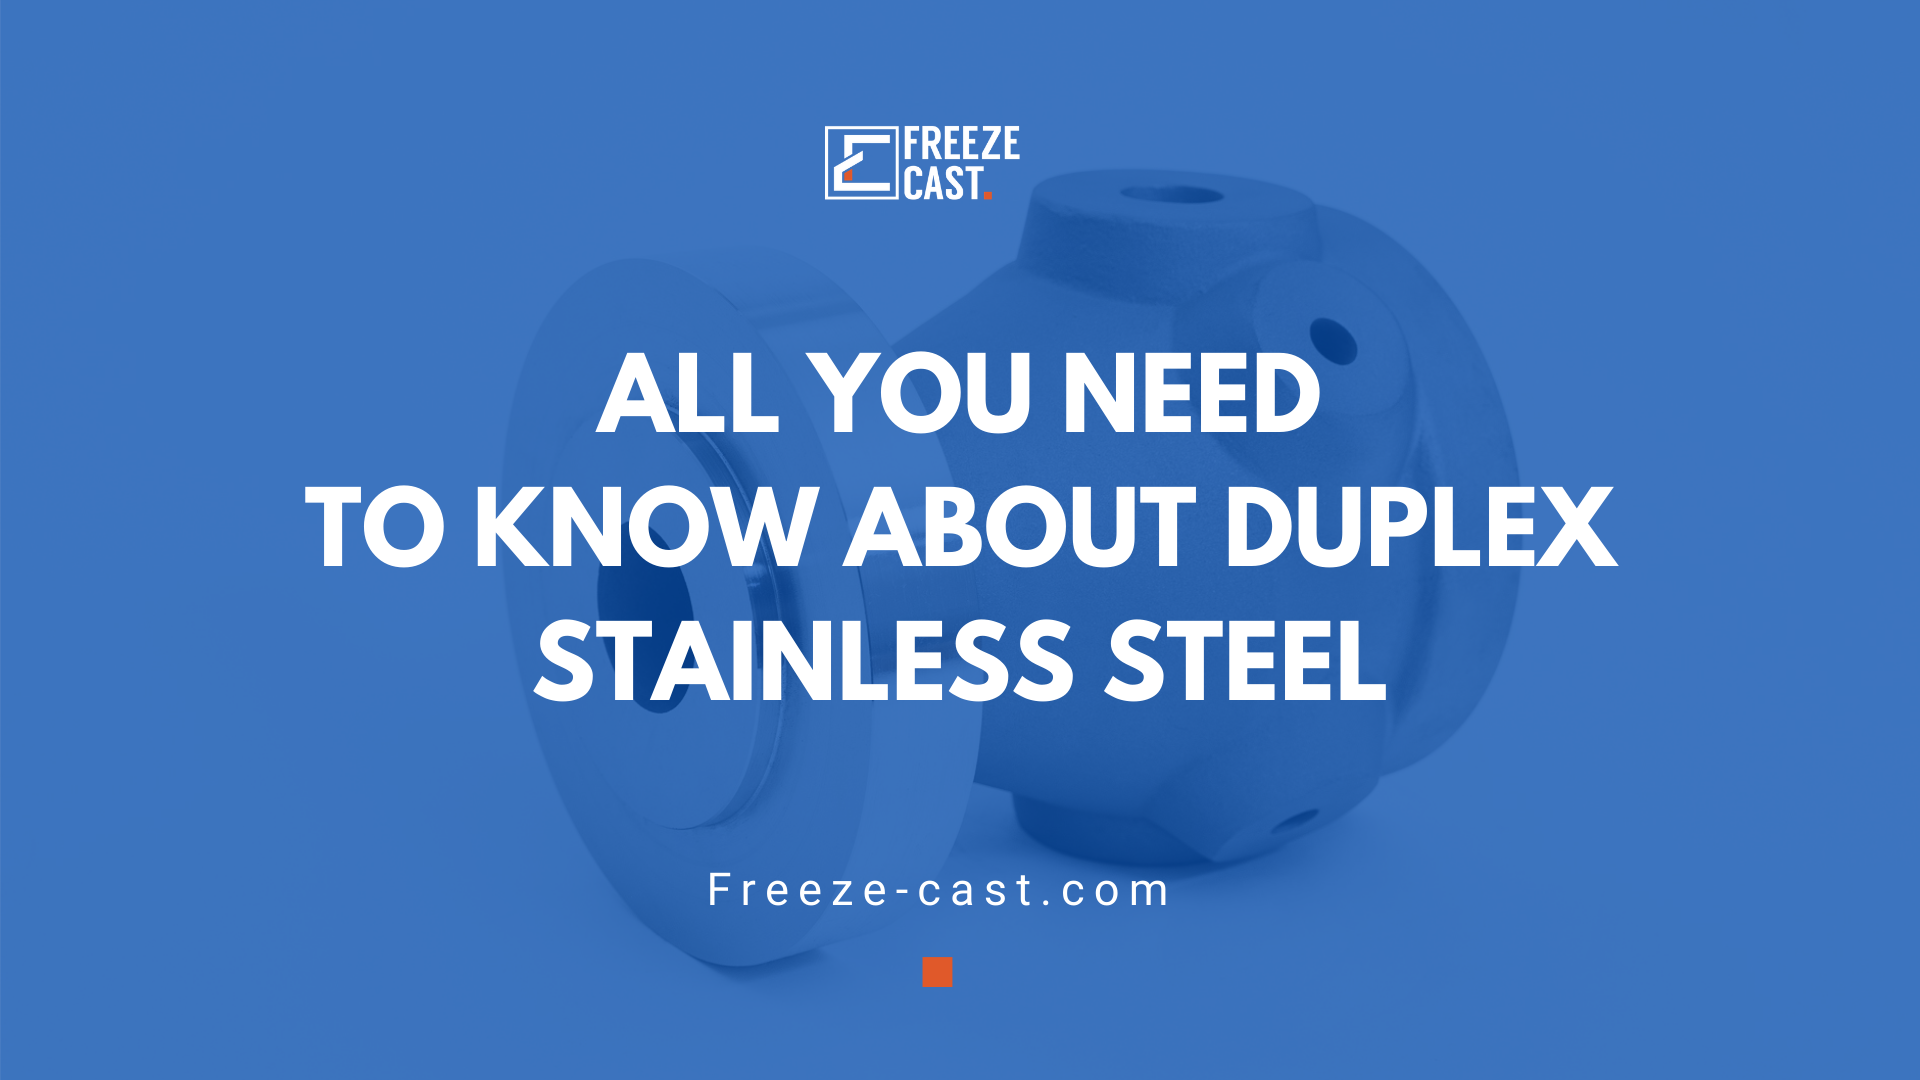 All you need to know about Duplex Stainless Steel